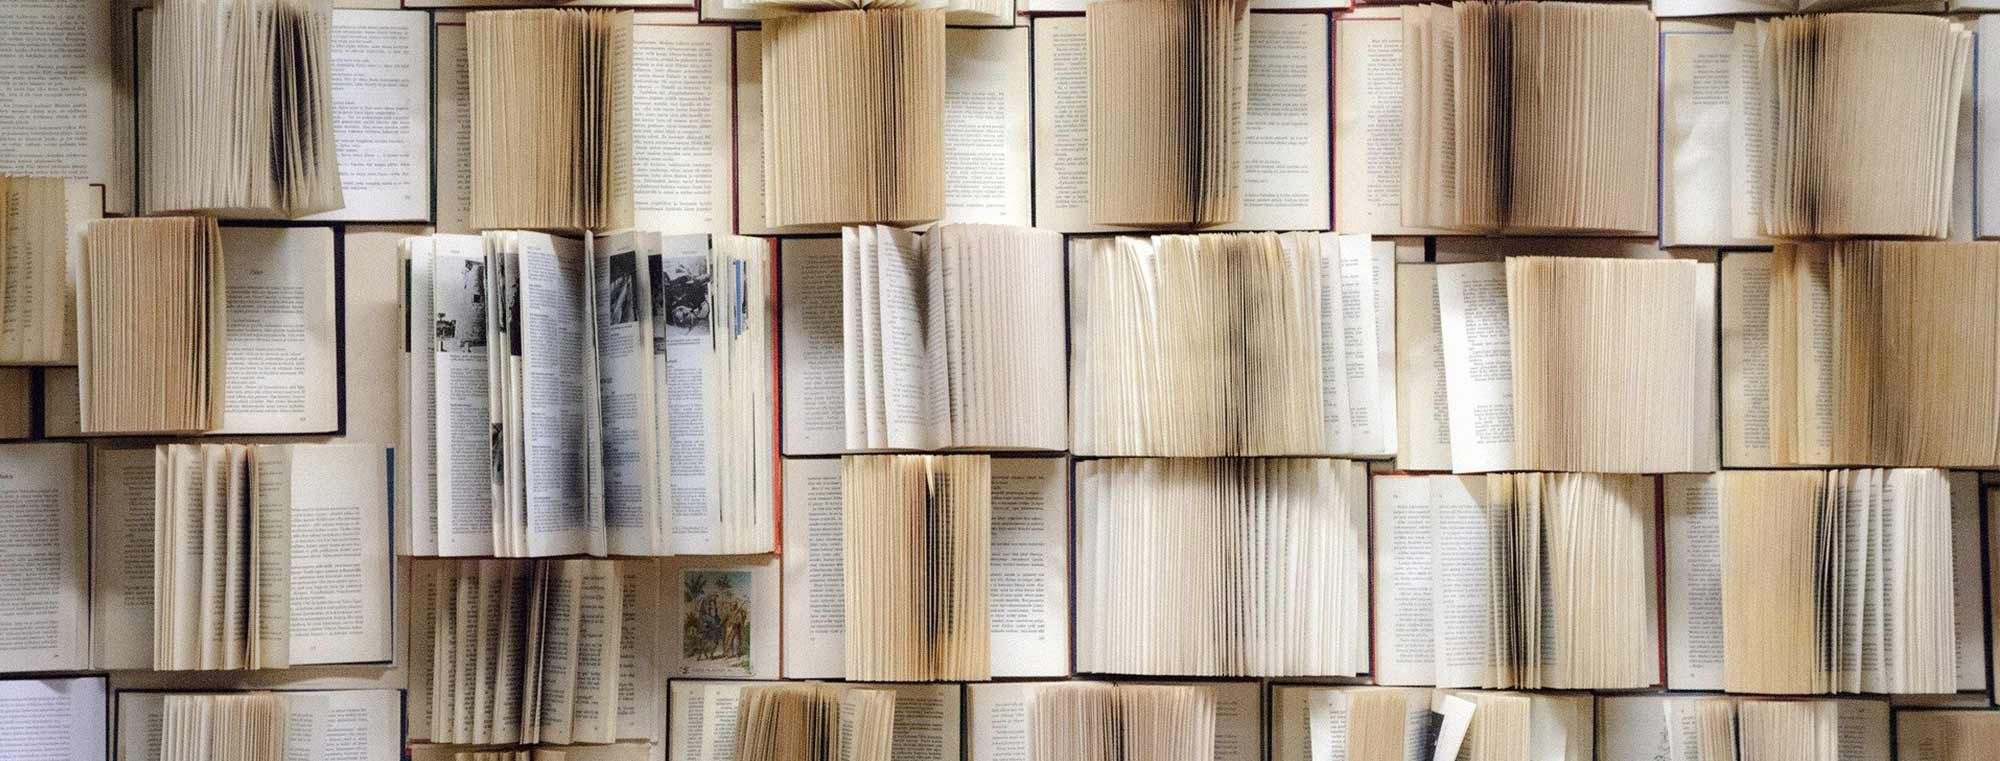 book-wall-1151405_1920